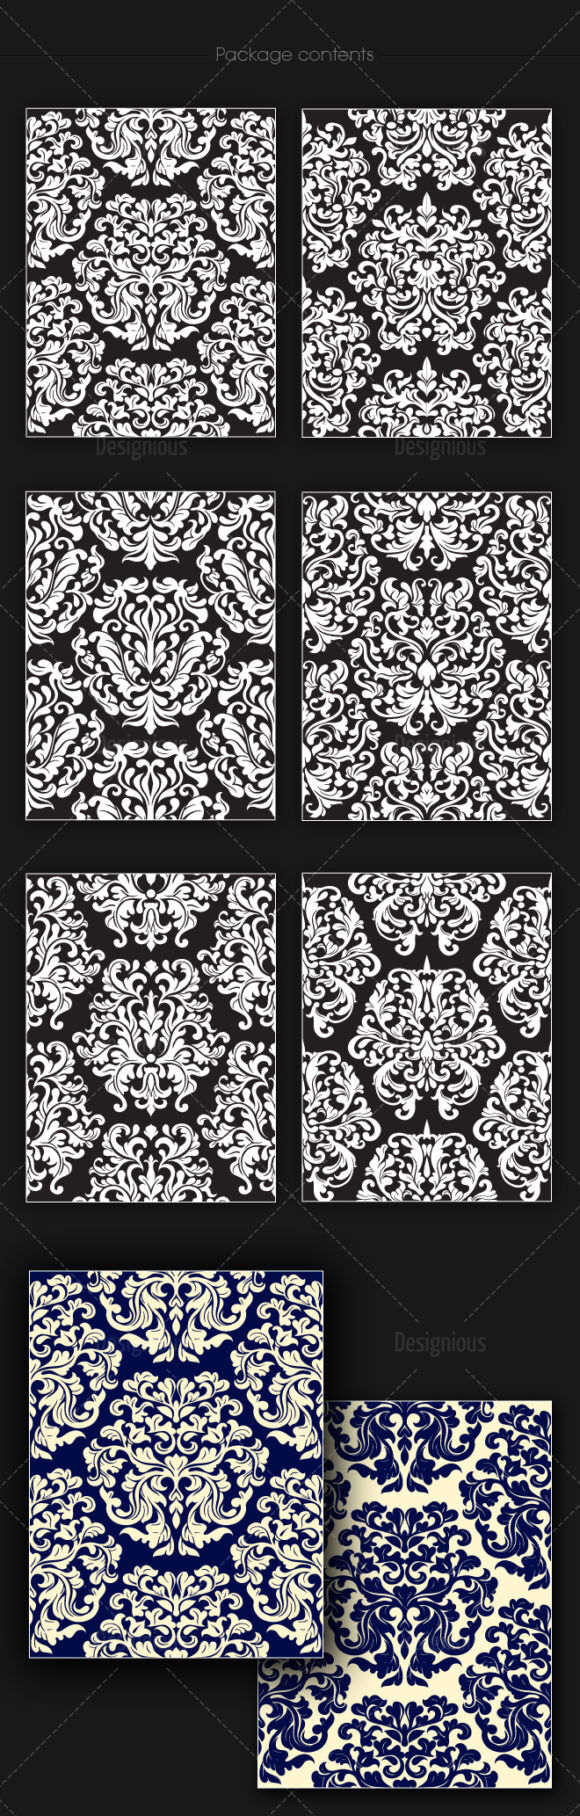 Seamless Patterns Vector Pack 145 Vector Patterns [tag]